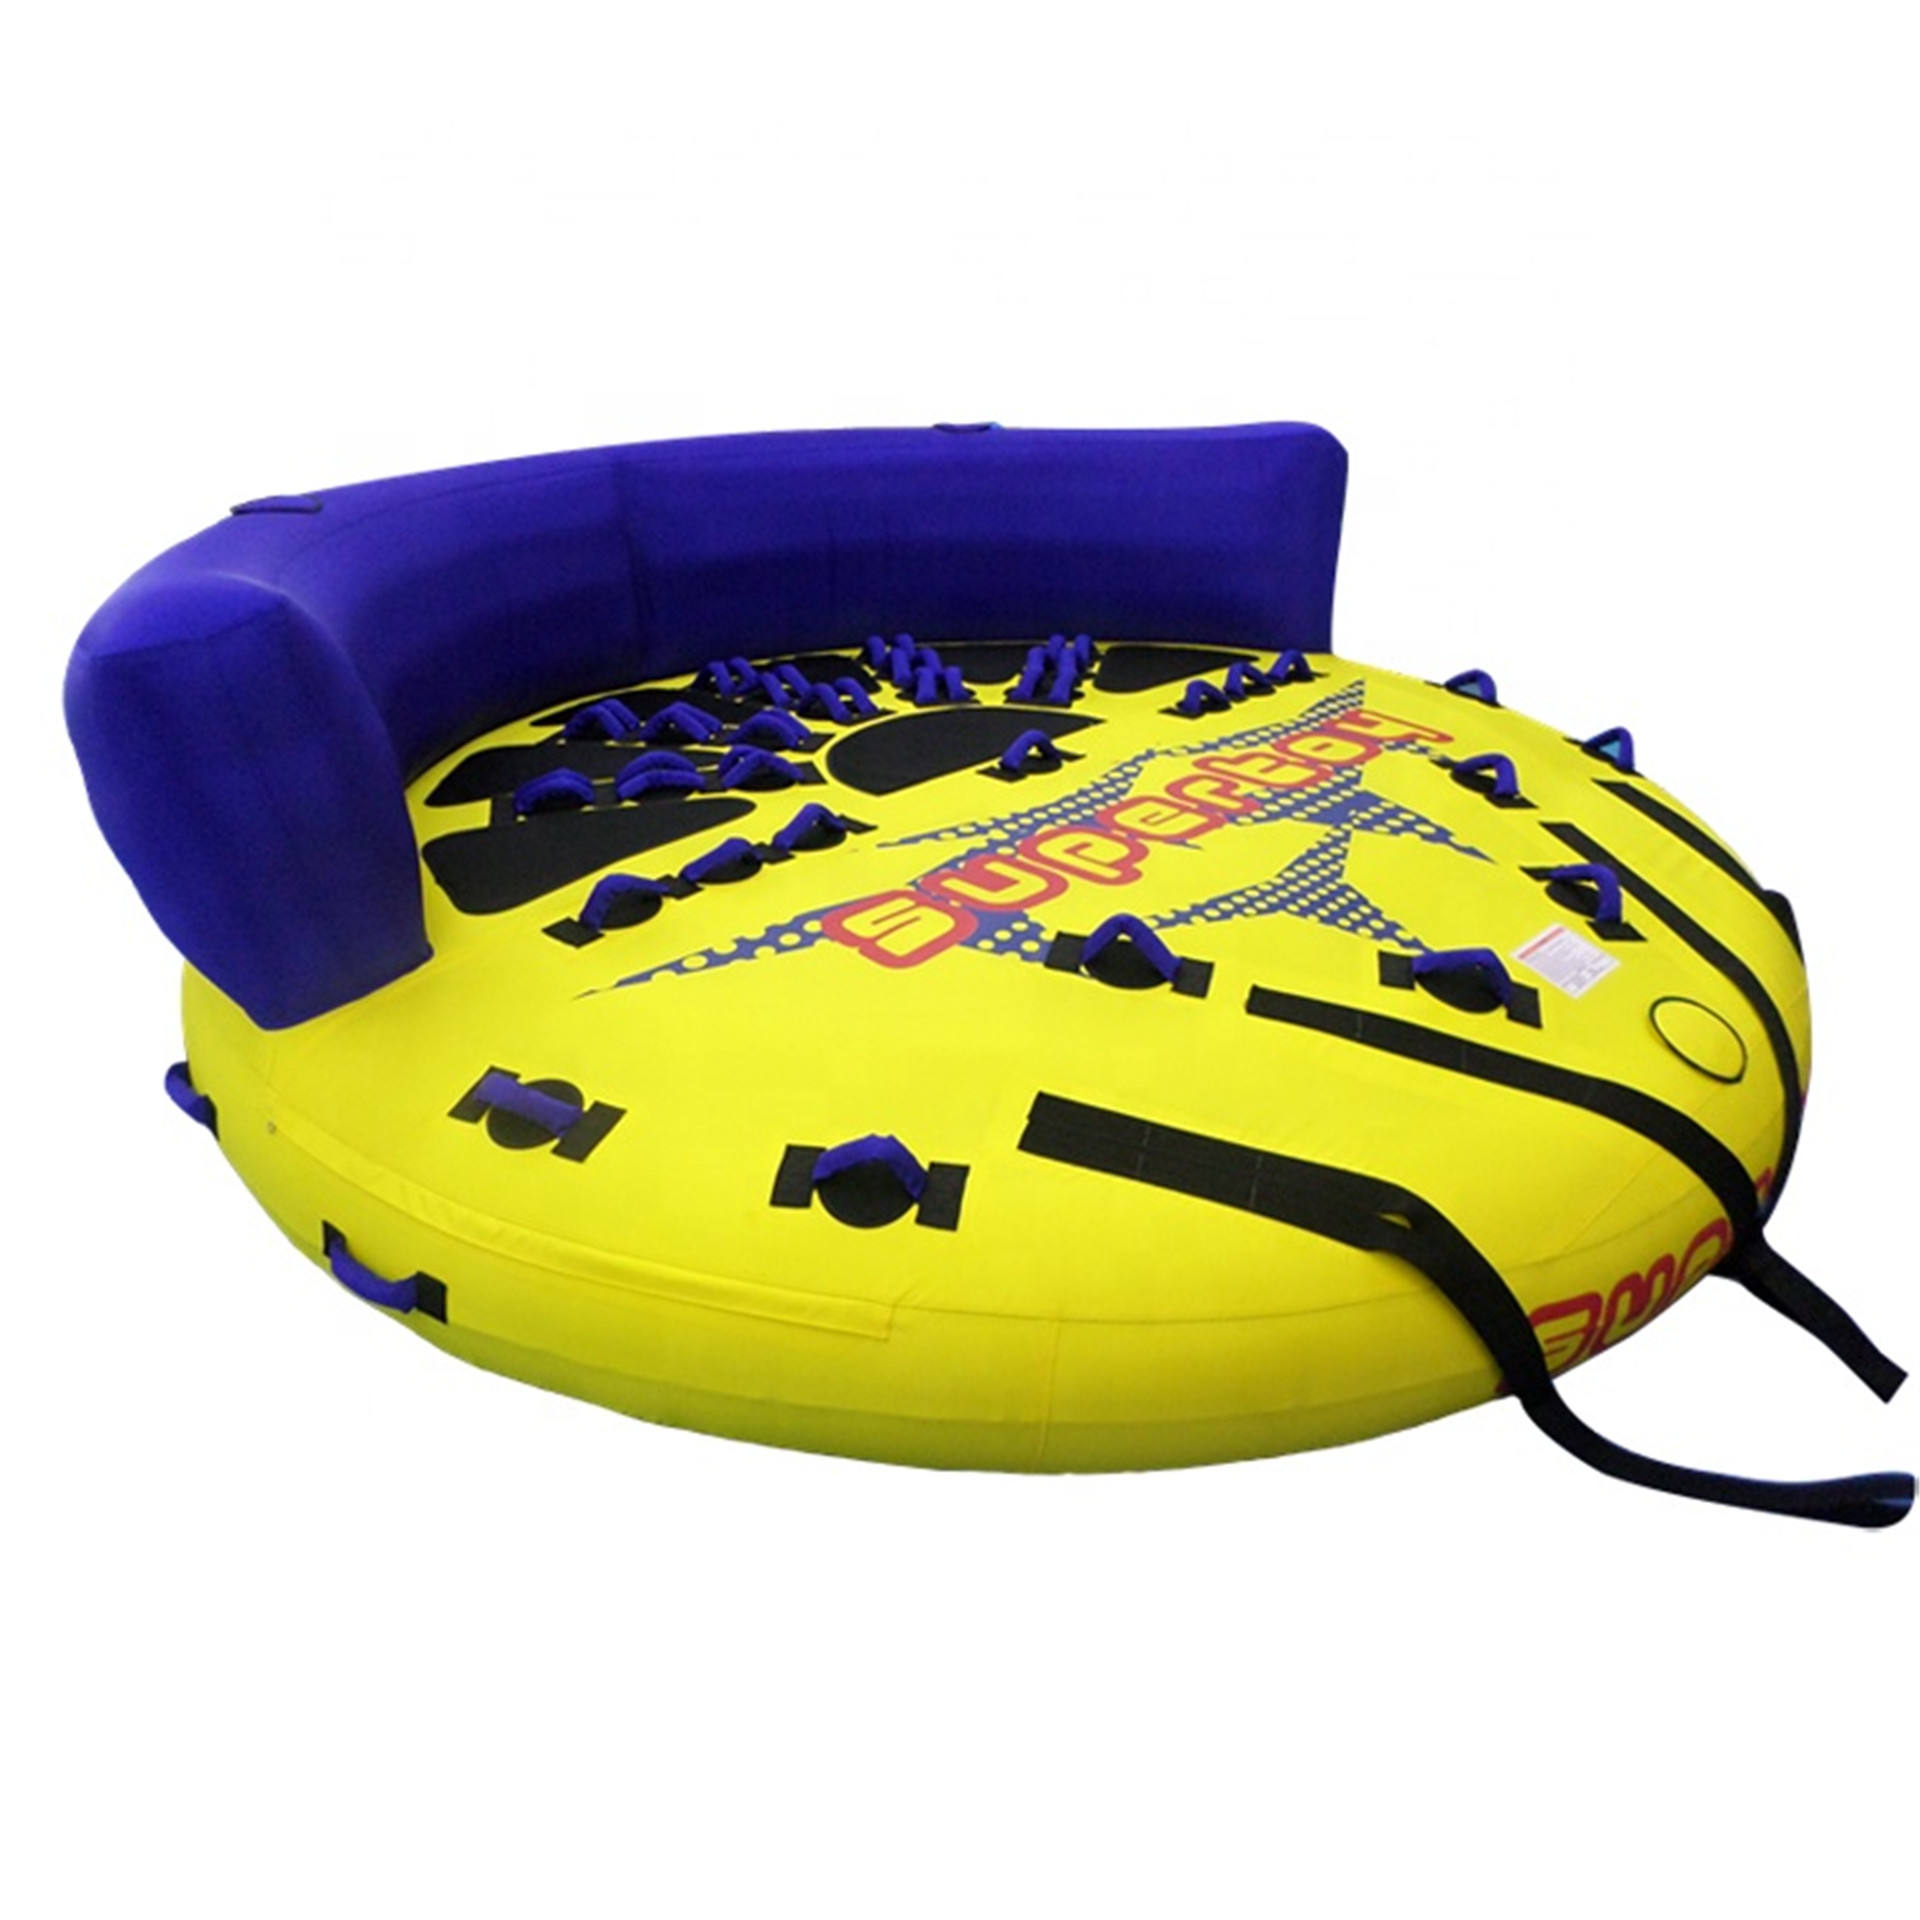 Hot sales 3 Persons Inflatable Towing Sofa Towables Tubes